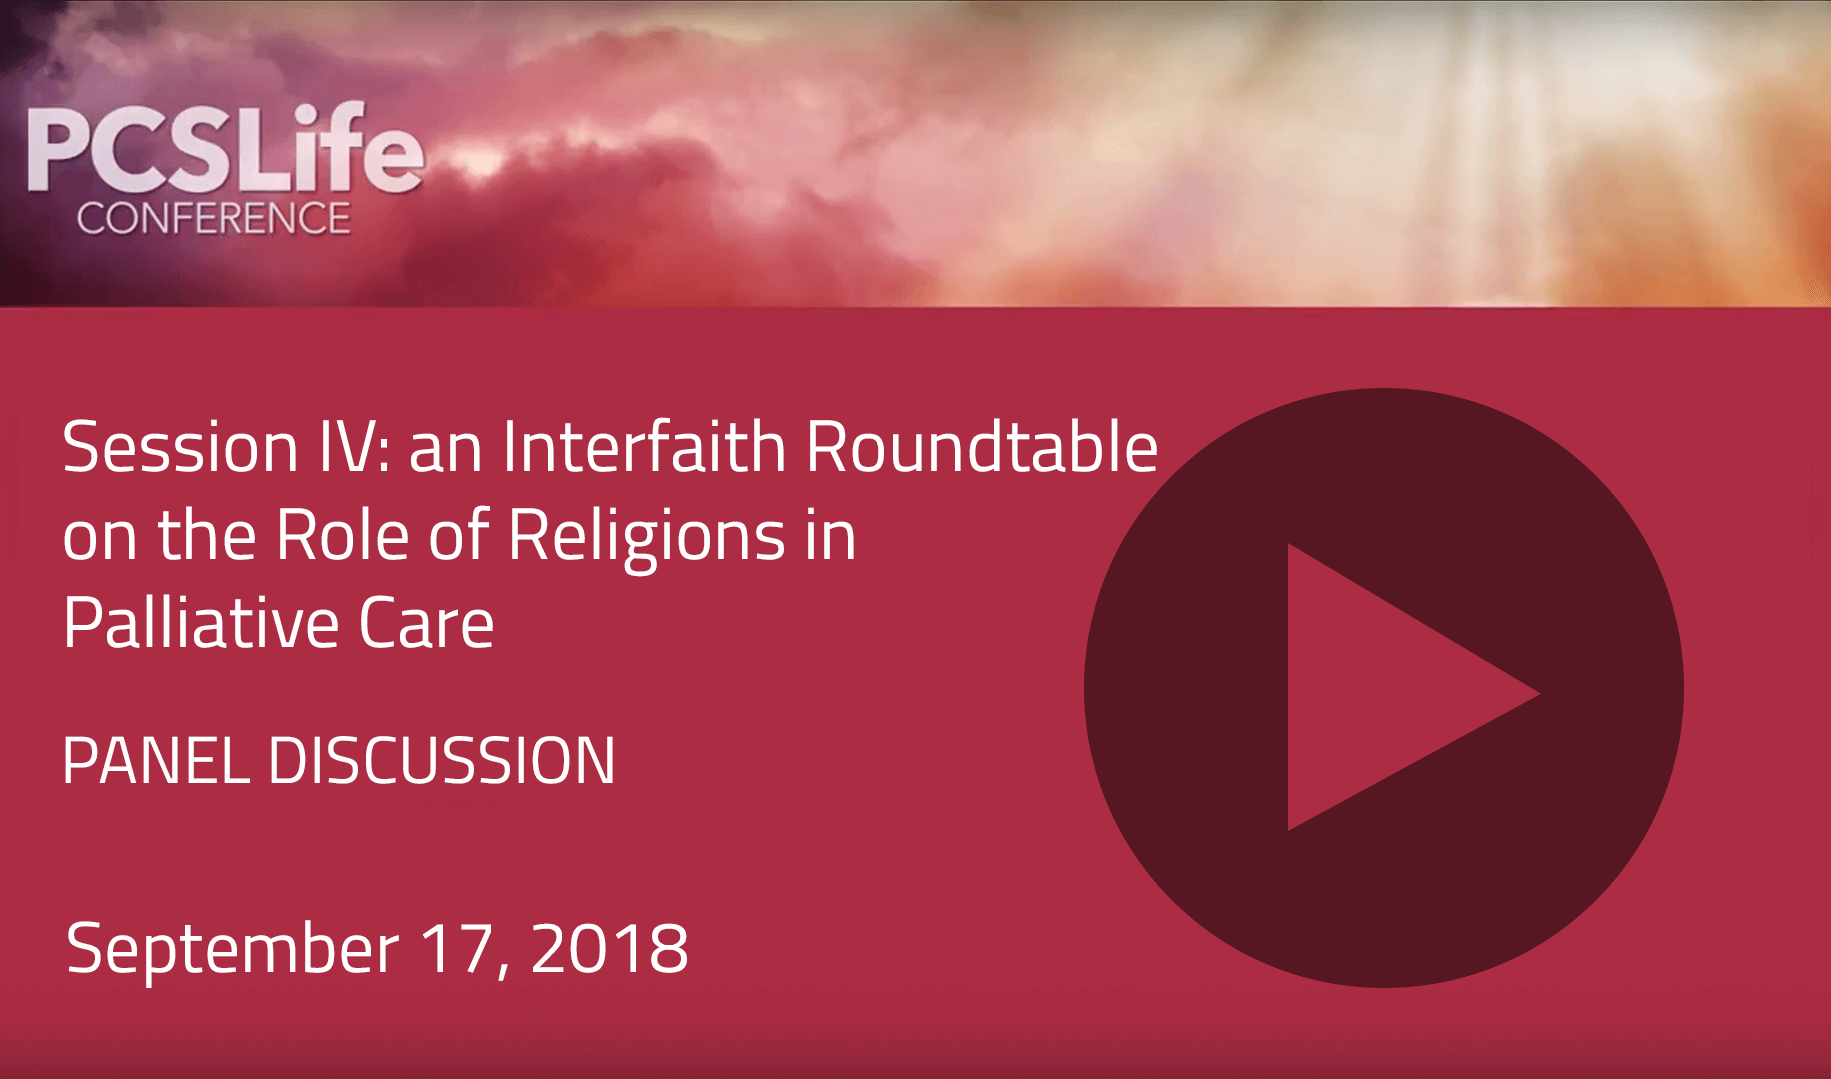 Session Four: an Interfaith Roundtable on the Role of Religions in Palliative Care